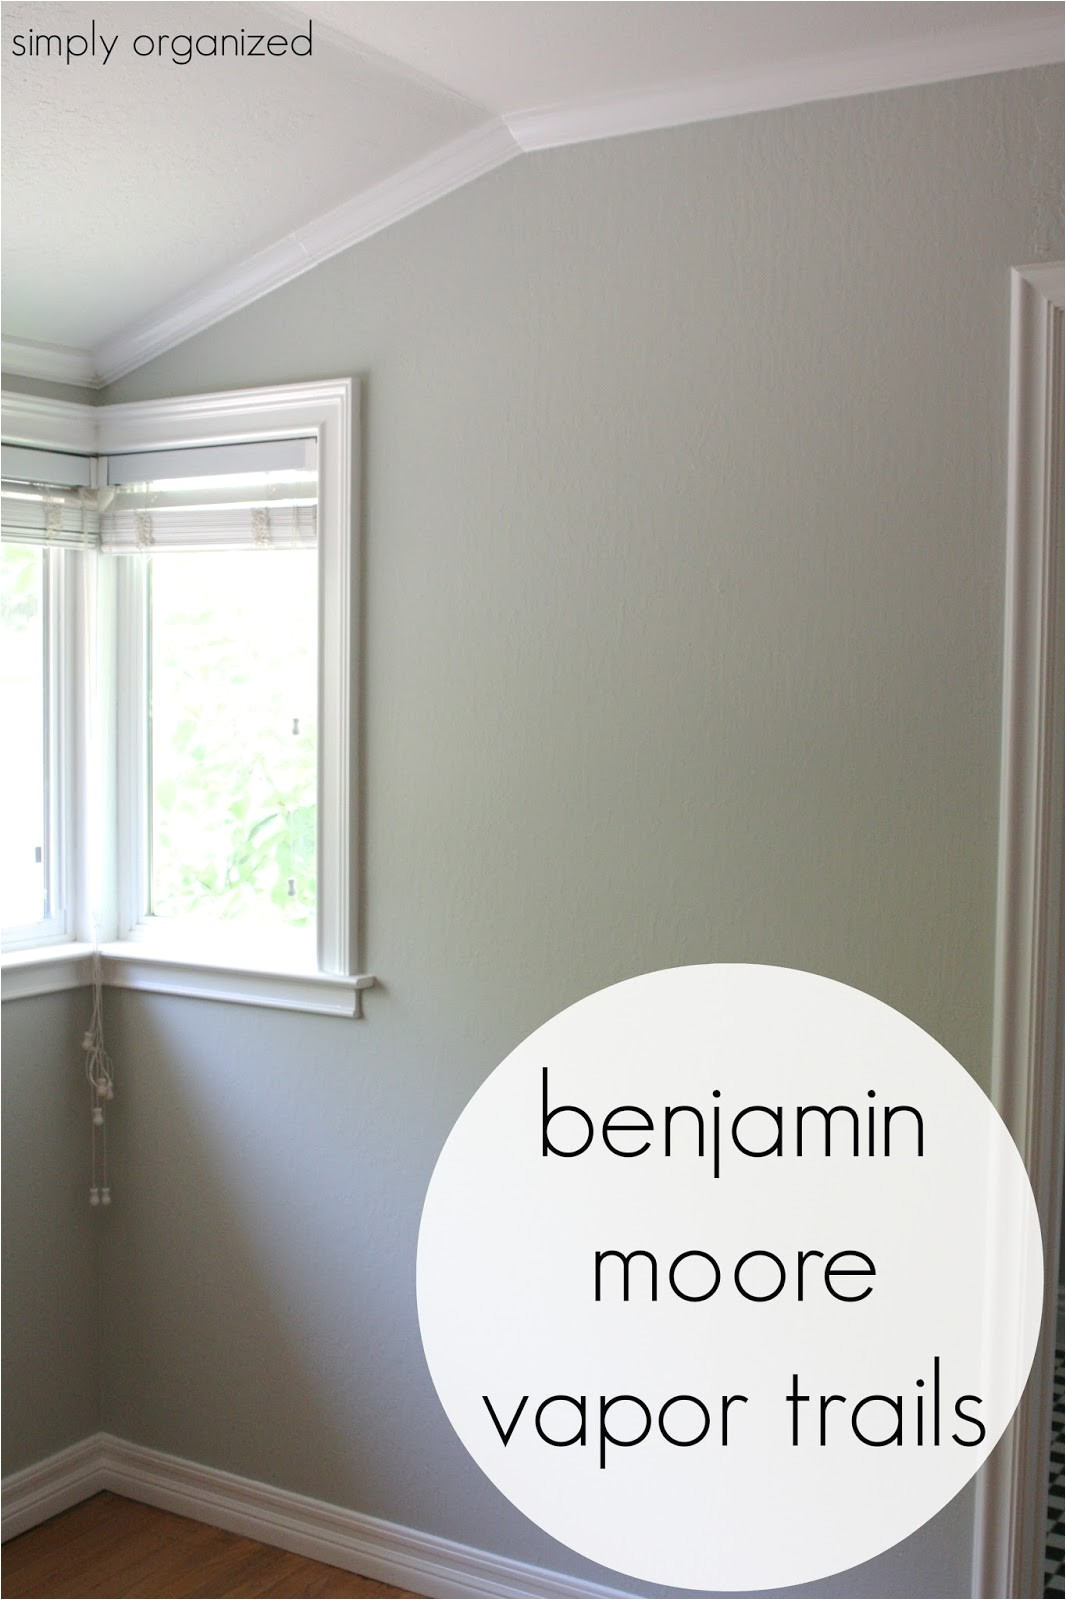 Benjamin Moore Vapor Trails Undertones My Home Interior Paint Color Palate Simply organized